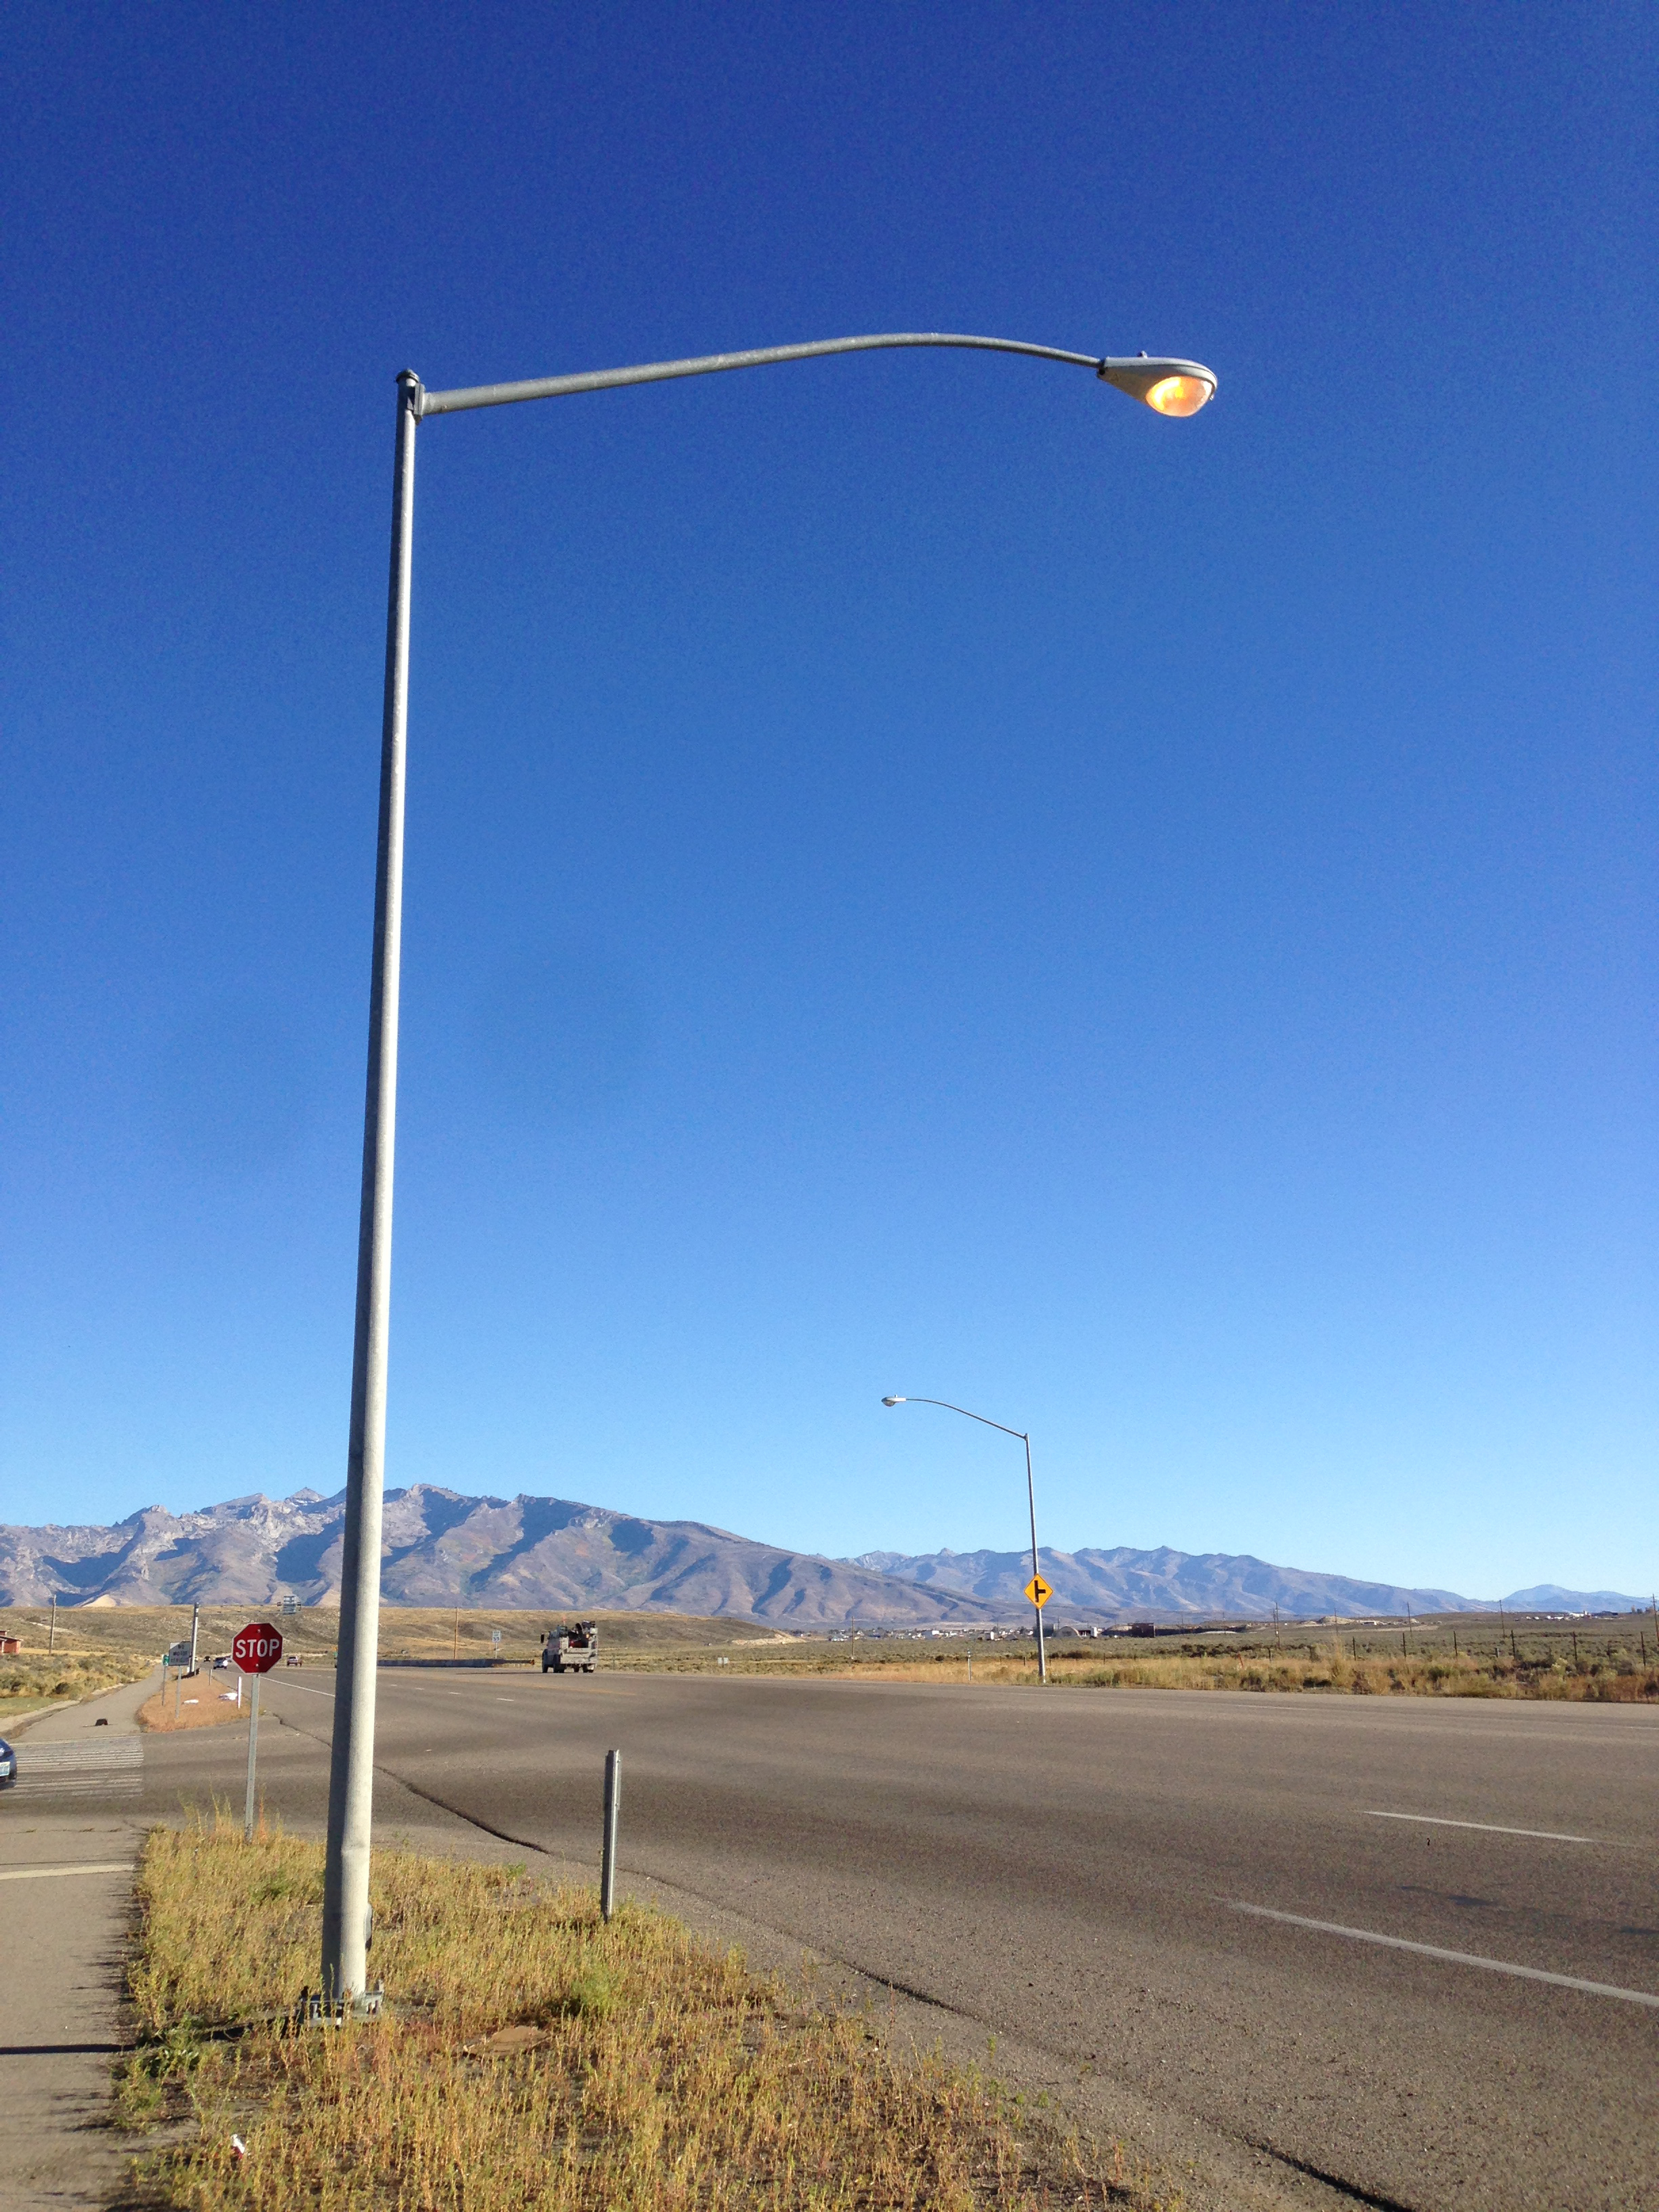 File:2014-10-05 16 14 16 Street light illuminated during the day along ... Lights